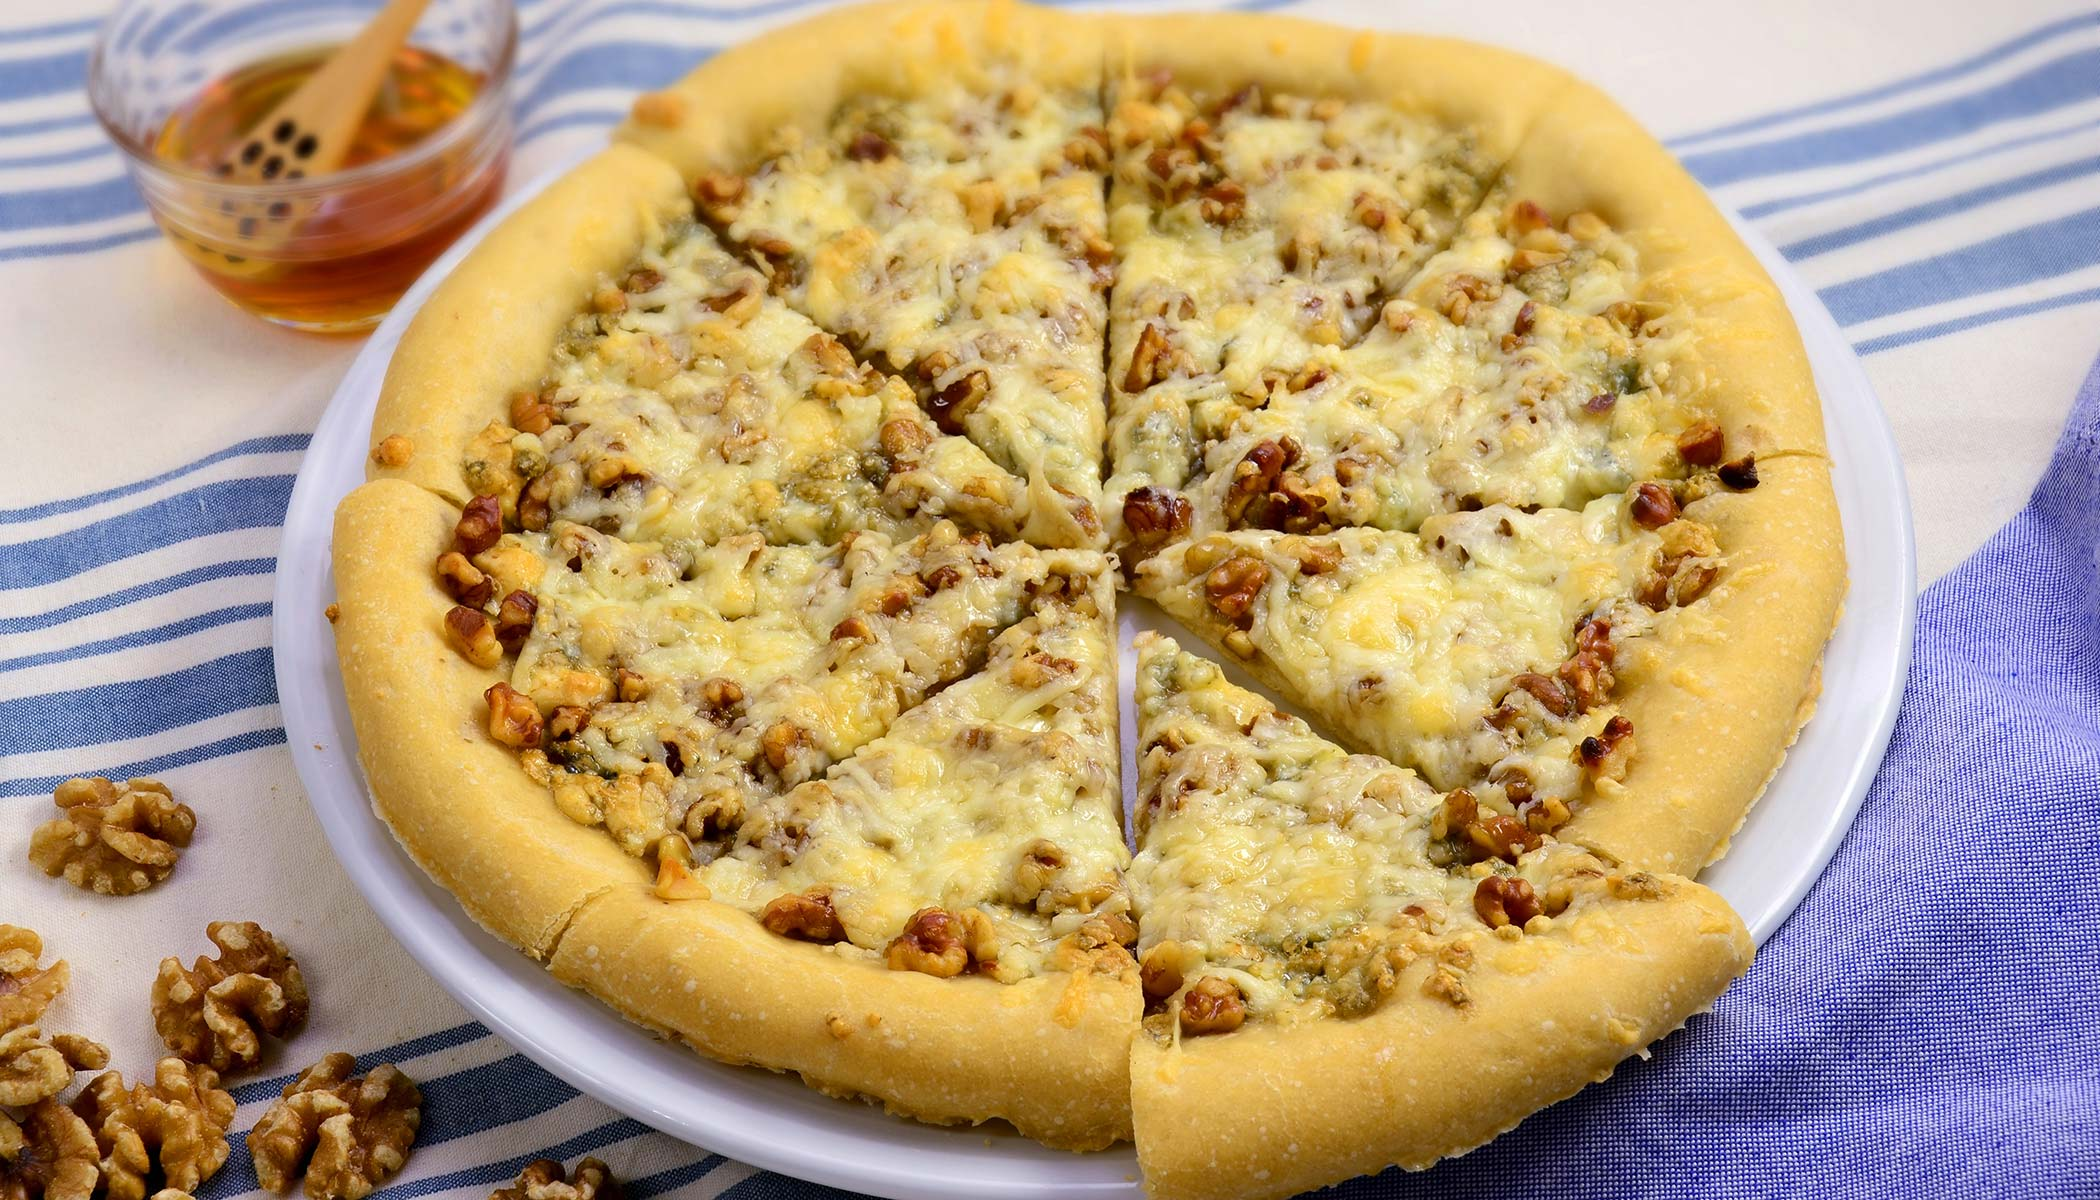 Pizza - Gorgonzola & Honey (Thick Crust)